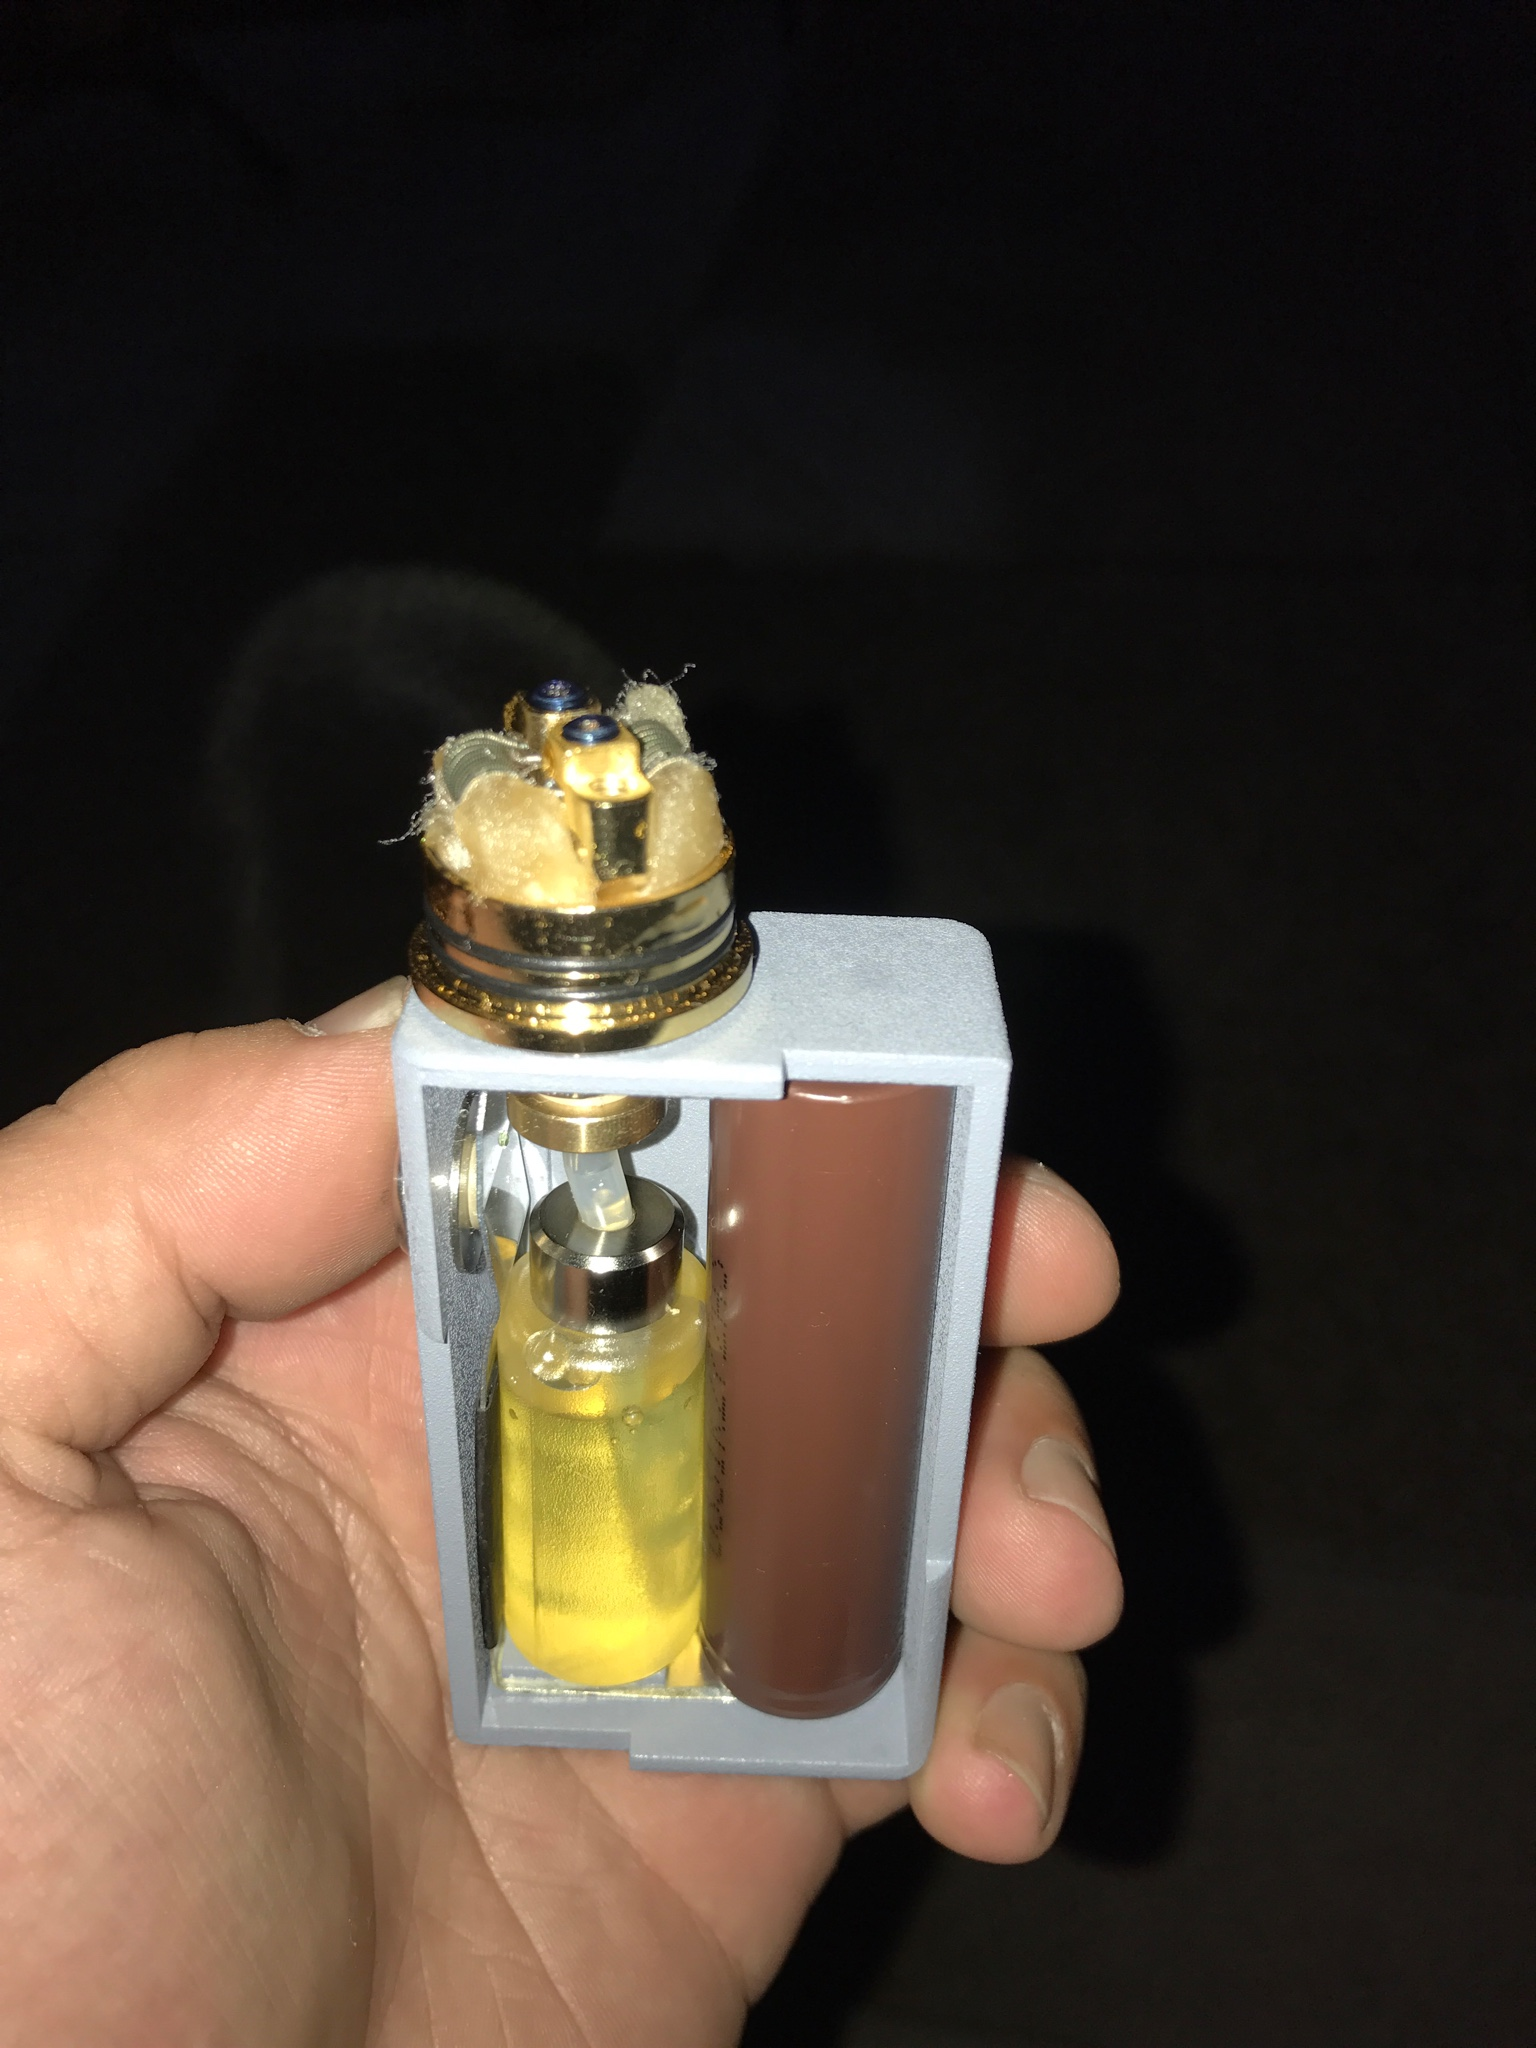 First mech mod and first squonker | Vaping Underground